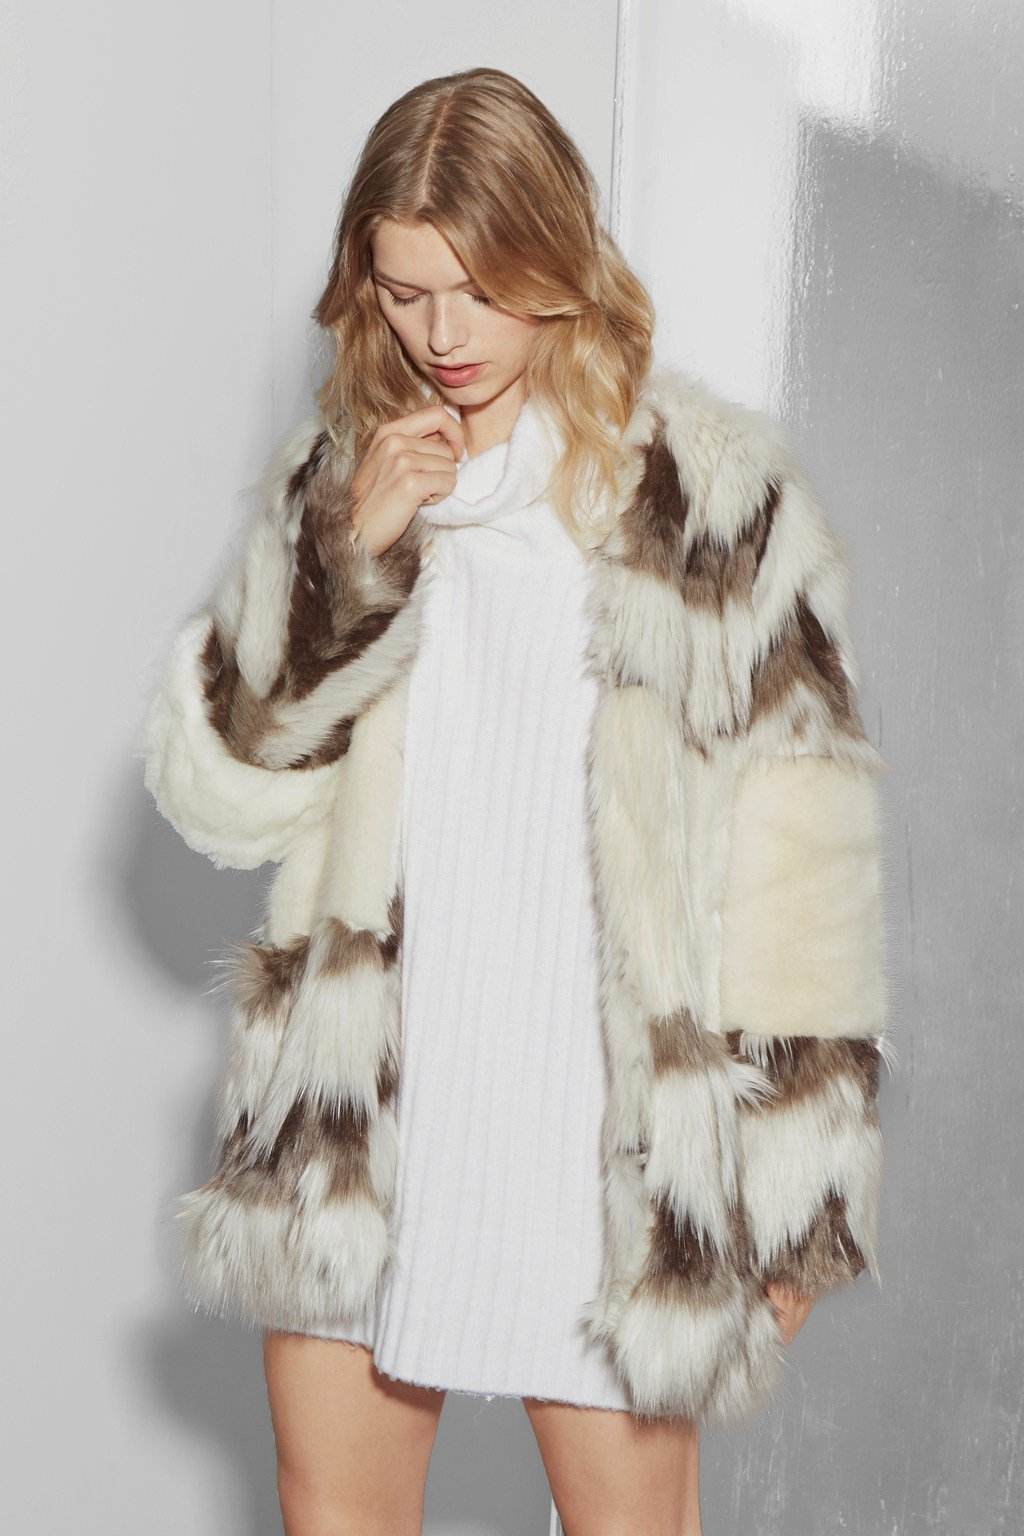 17-11-23-French-Connection-Faux-Fur.jpg#asset:594683